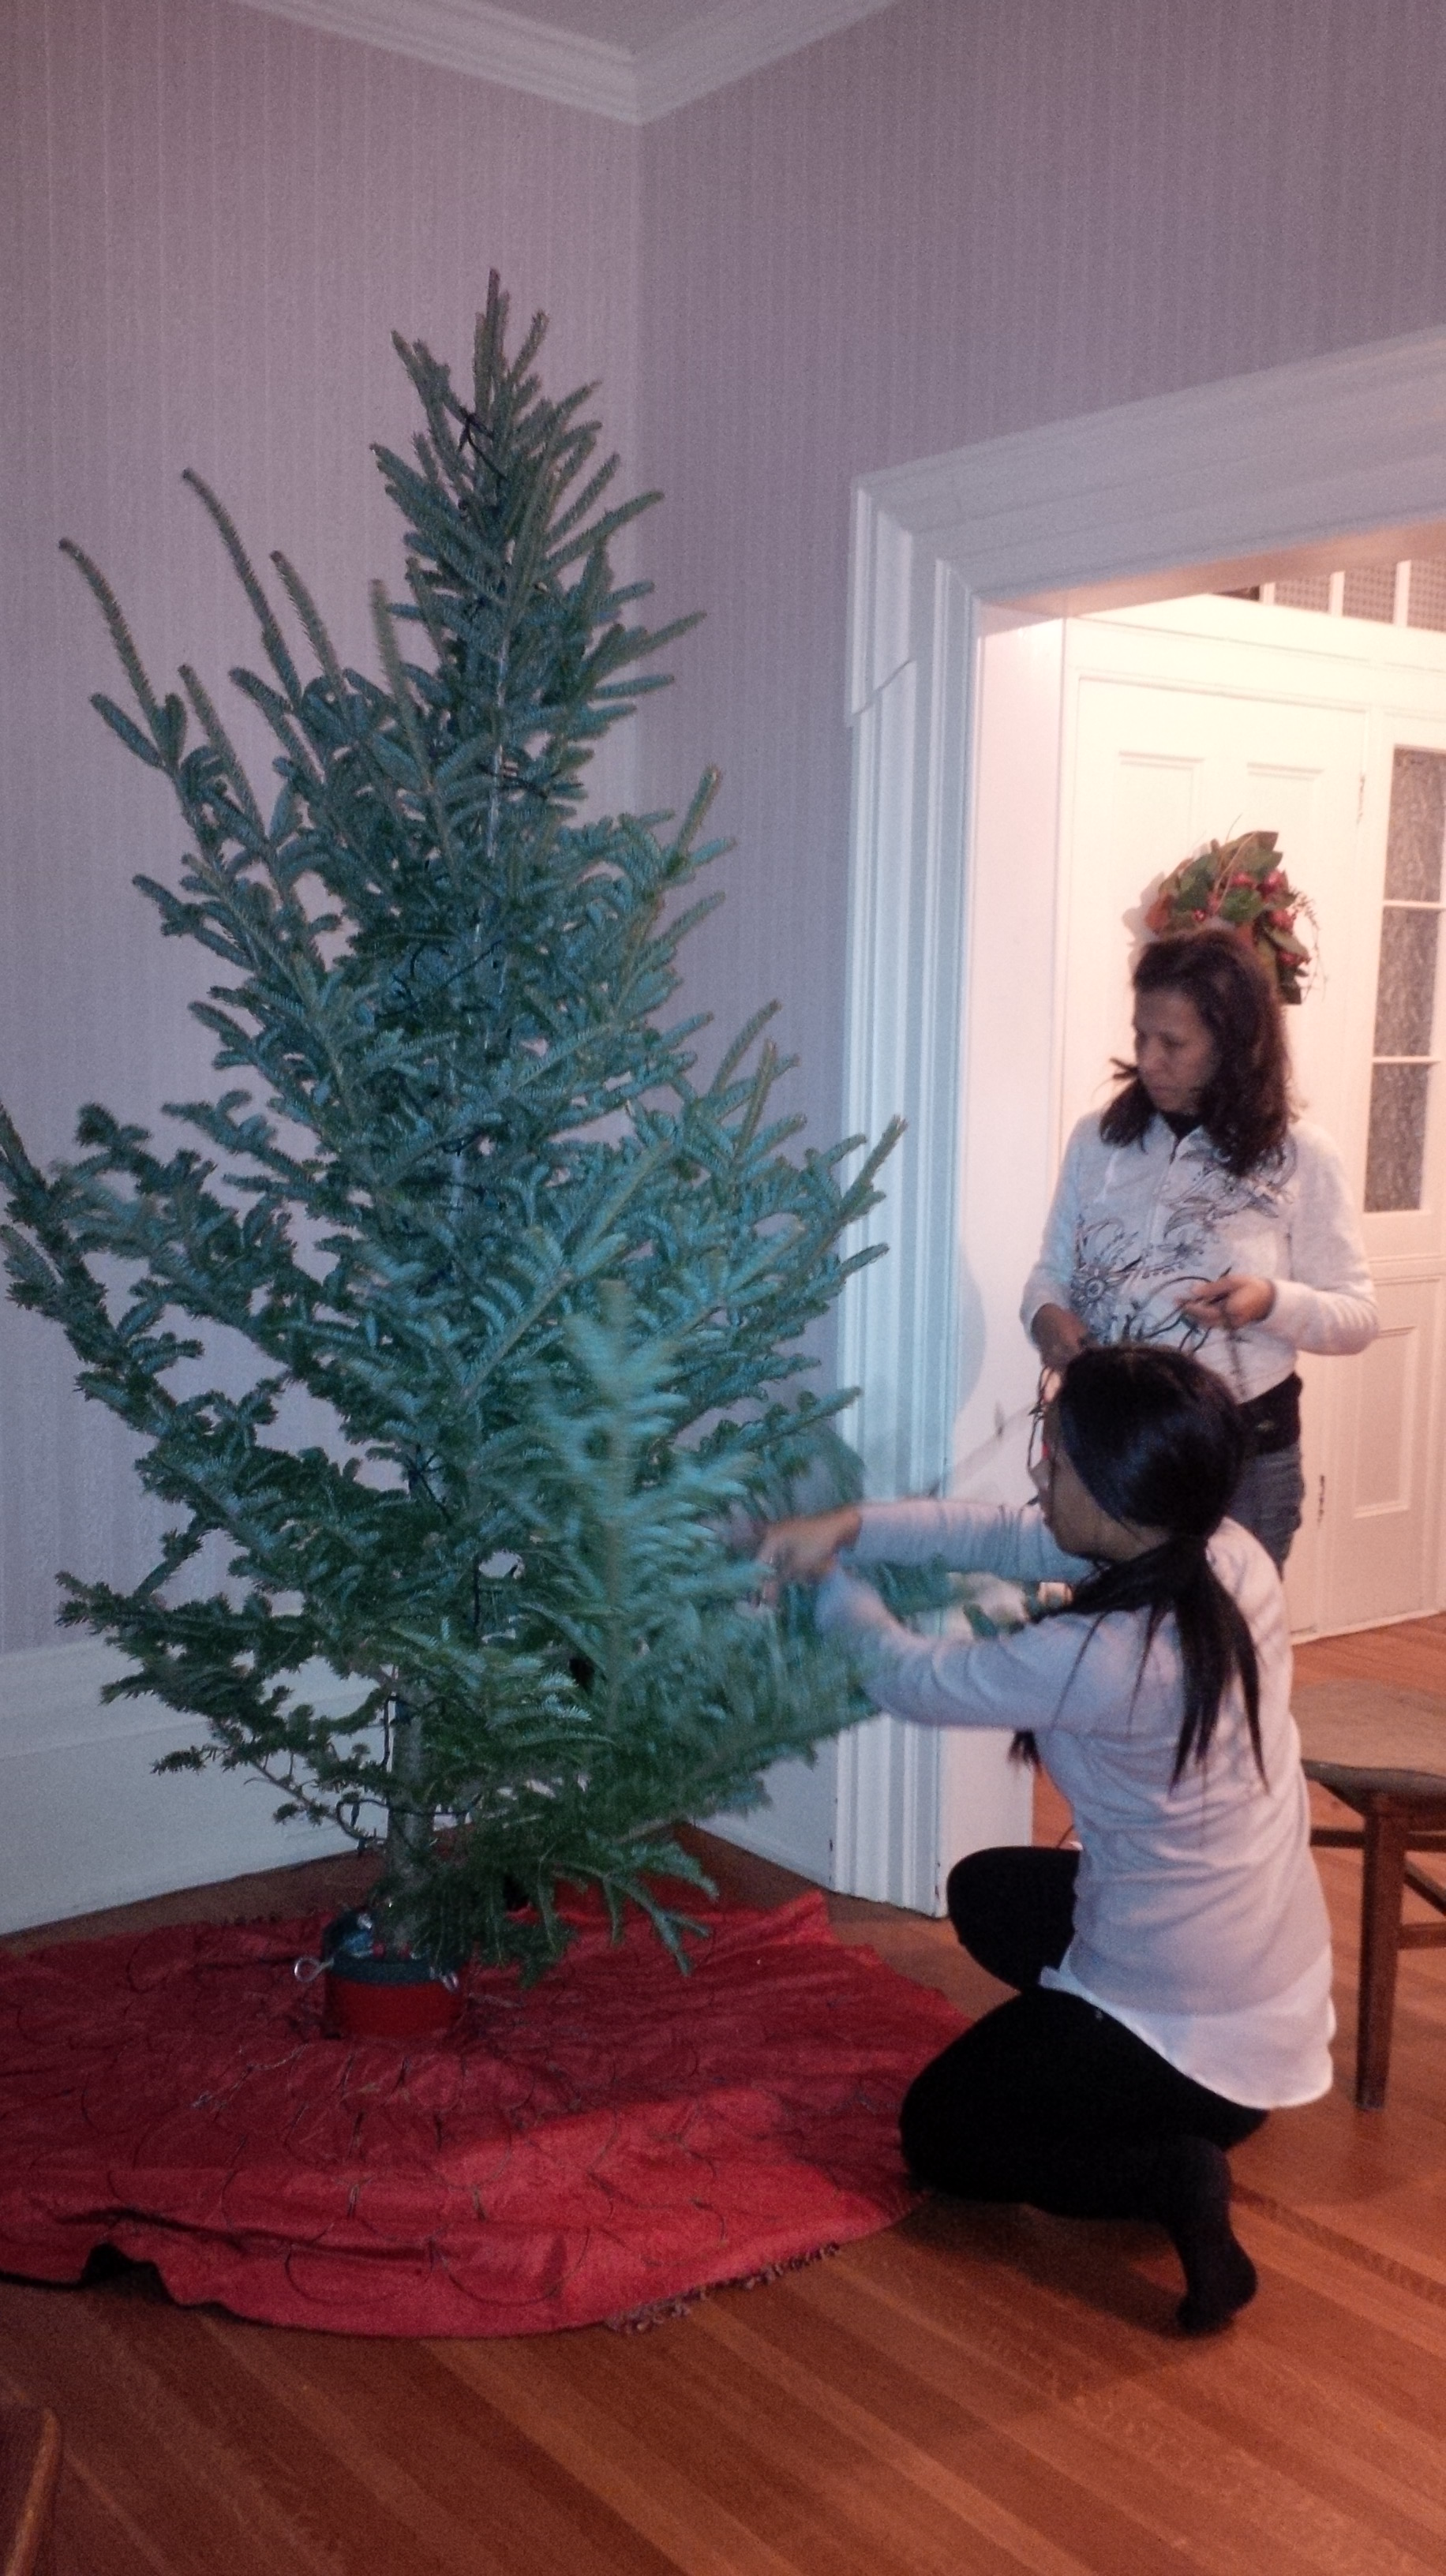 The lopsided Christmas tree | Cynthia Reyes - Author